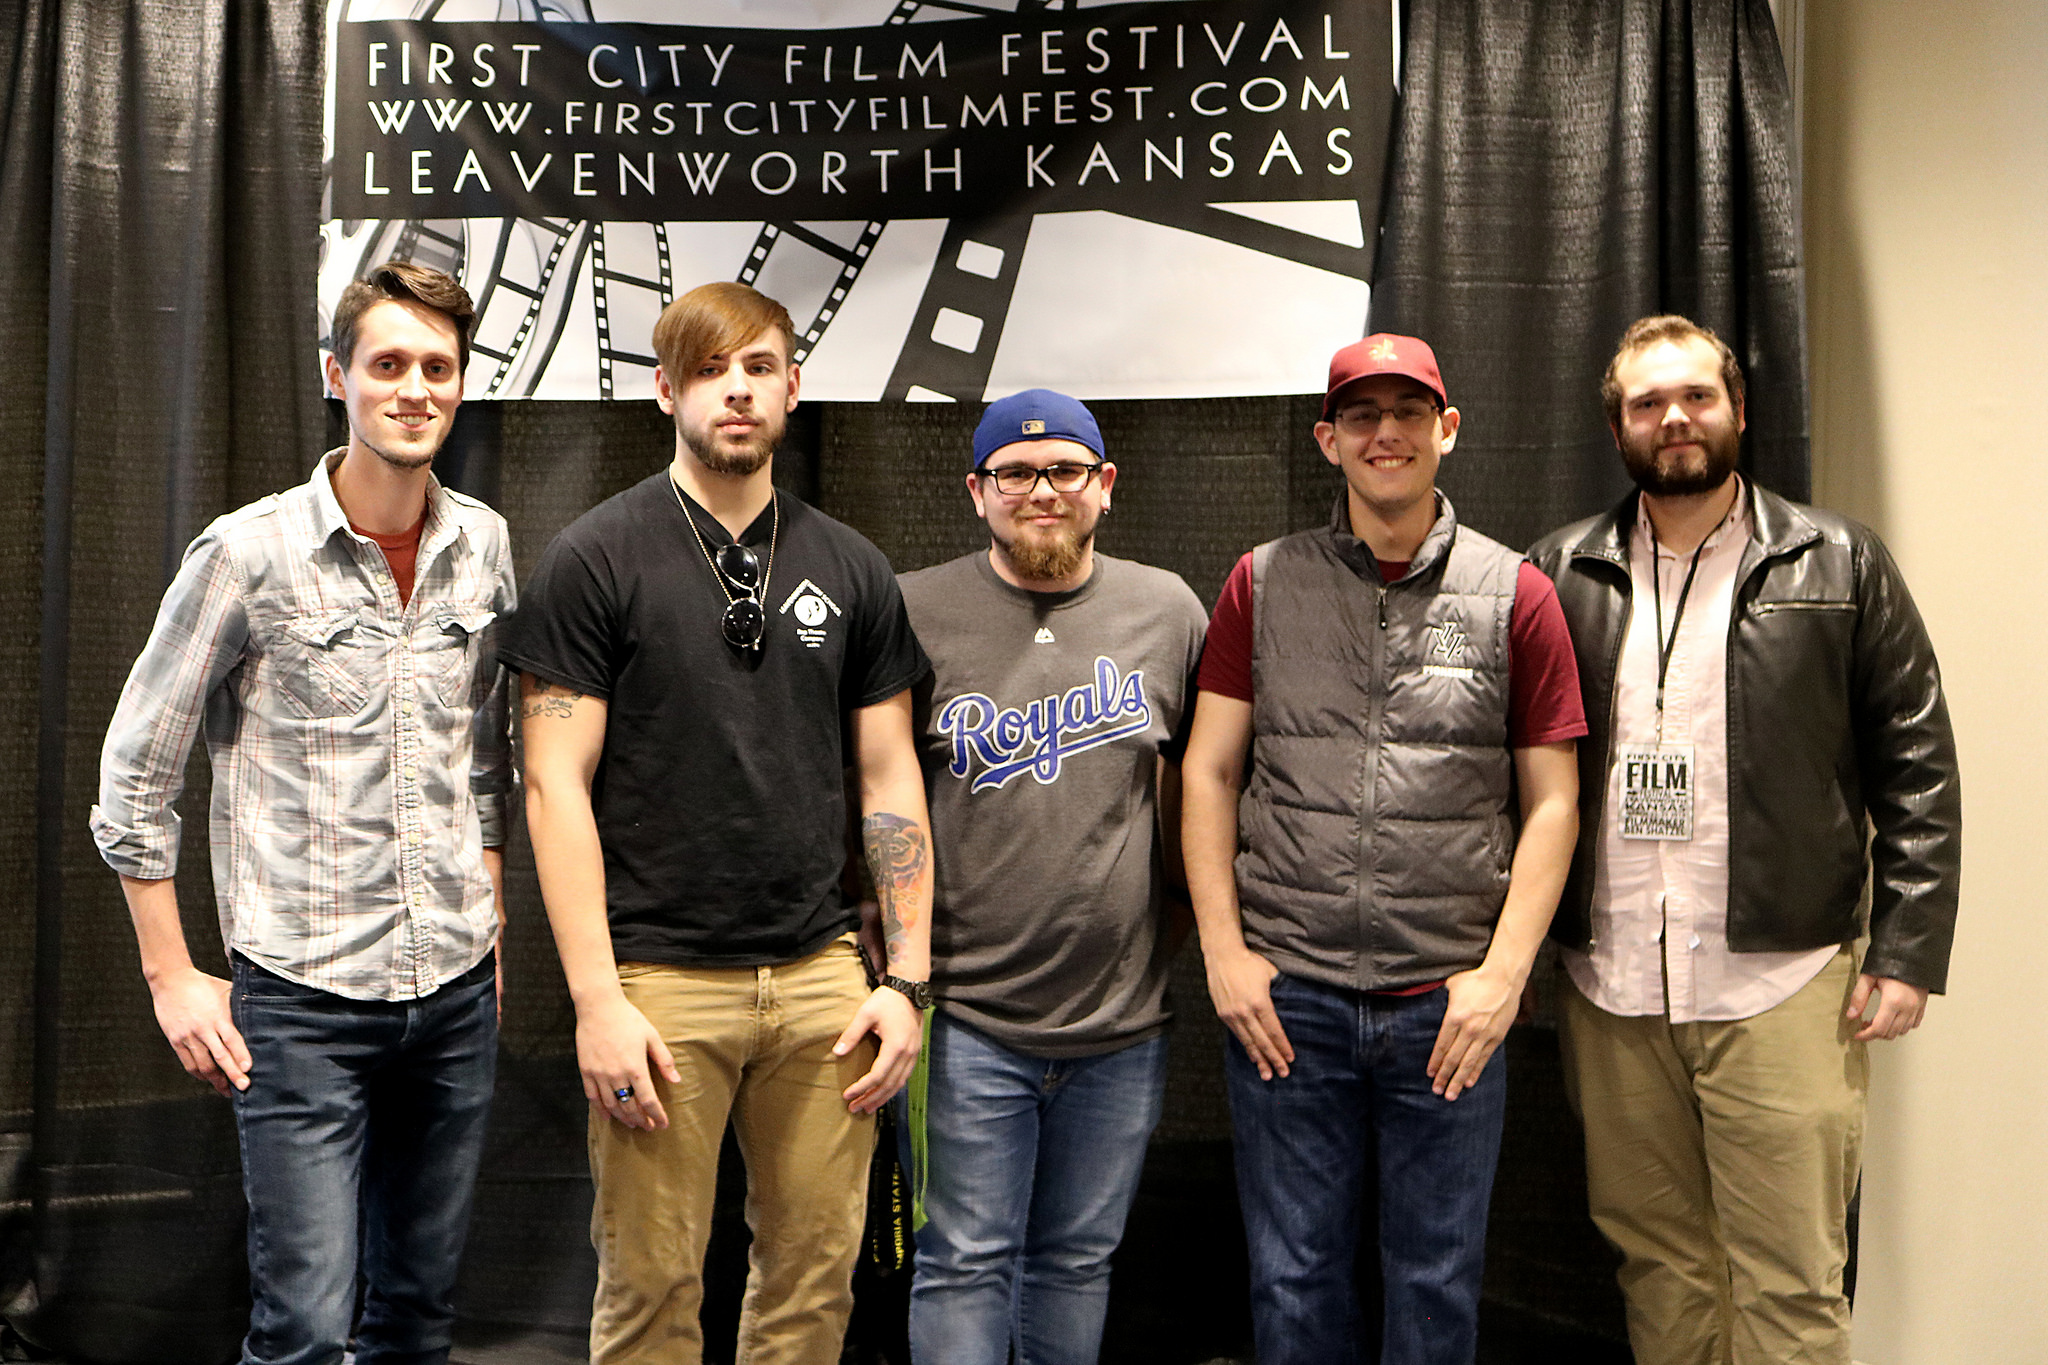 Student filmmakers pose with local filmmaker Caleb Vetter (far left) and Ben Schatzel (far right) after the First City Student Short screenings and awards March 22, 2018. Vetter also served as a judge for the student films.